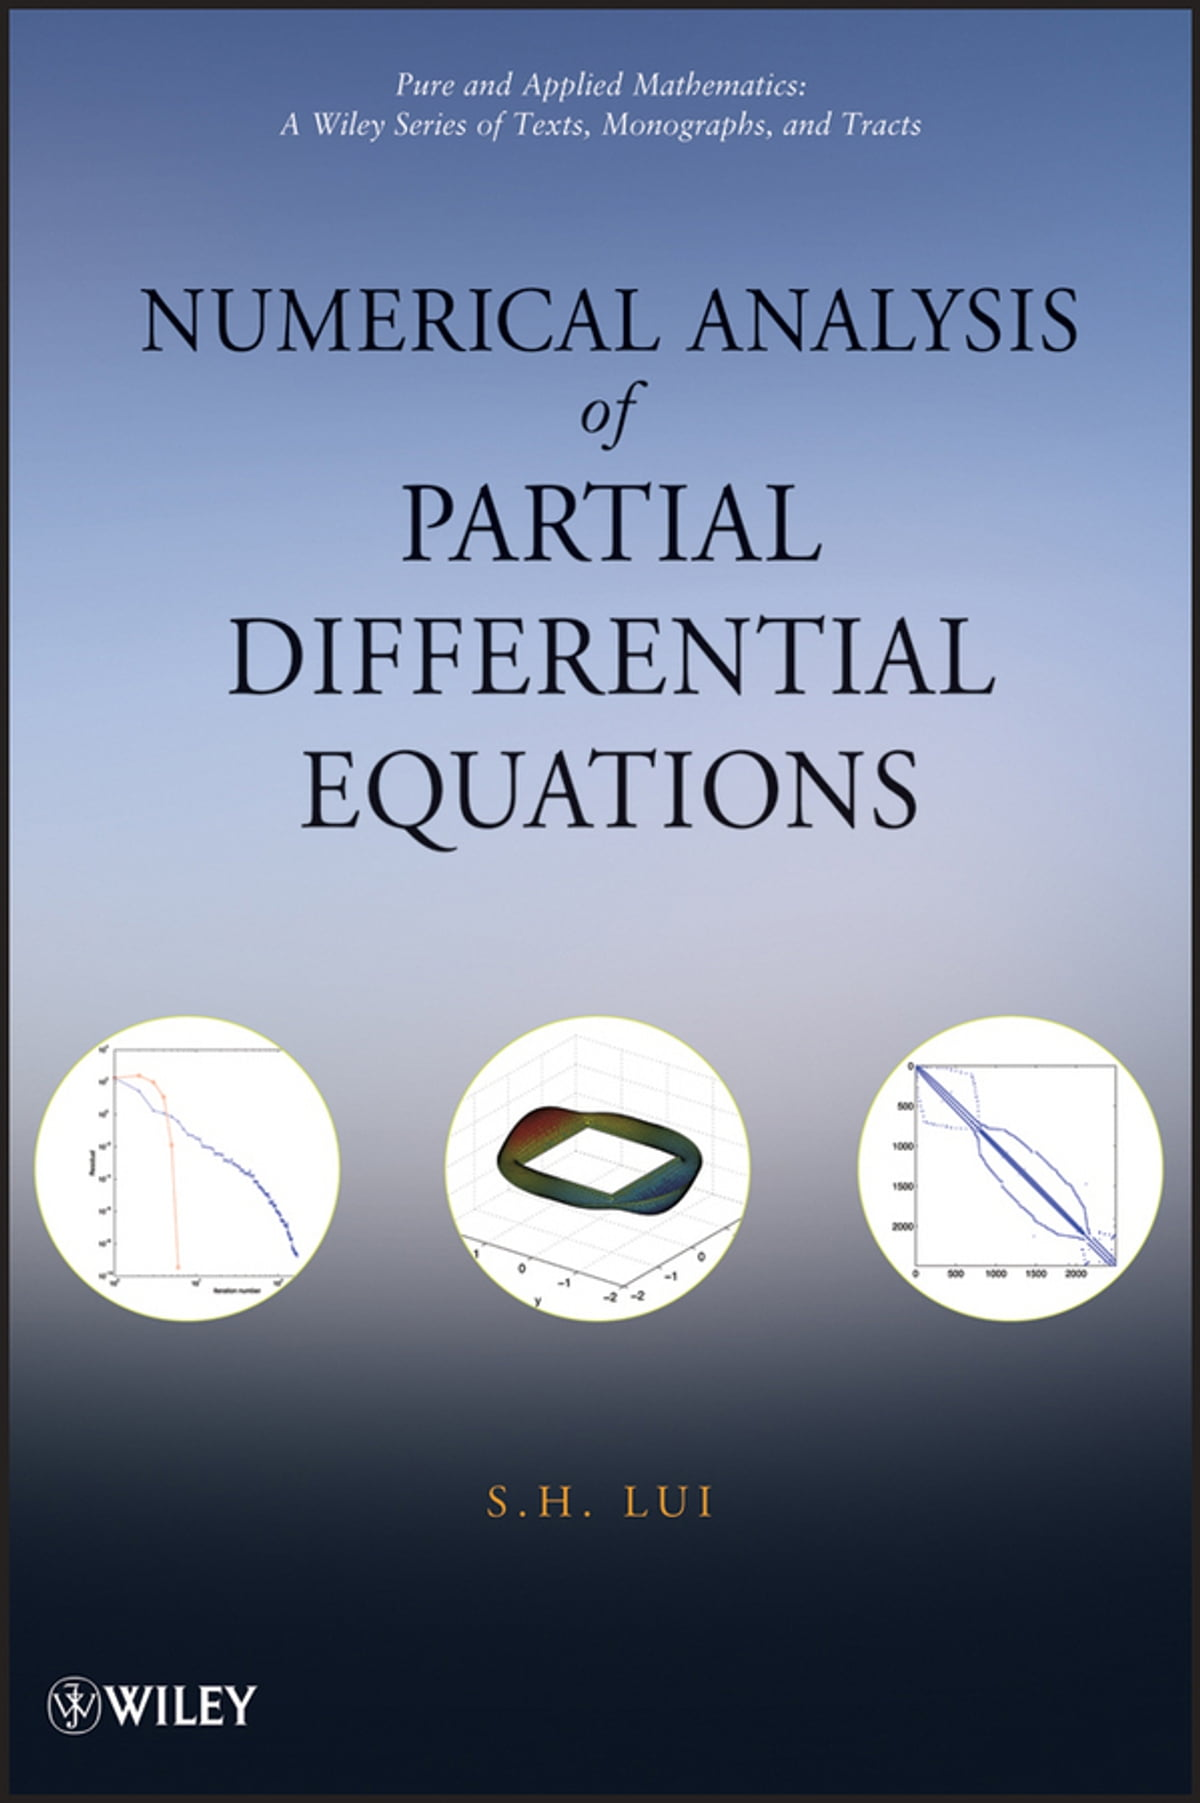 Numerical analysis of partial differential equations ebook by s h numerical analysis of partial differential equations ebook by s h lui 9781118111116 rakuten kobo fandeluxe Choice Image